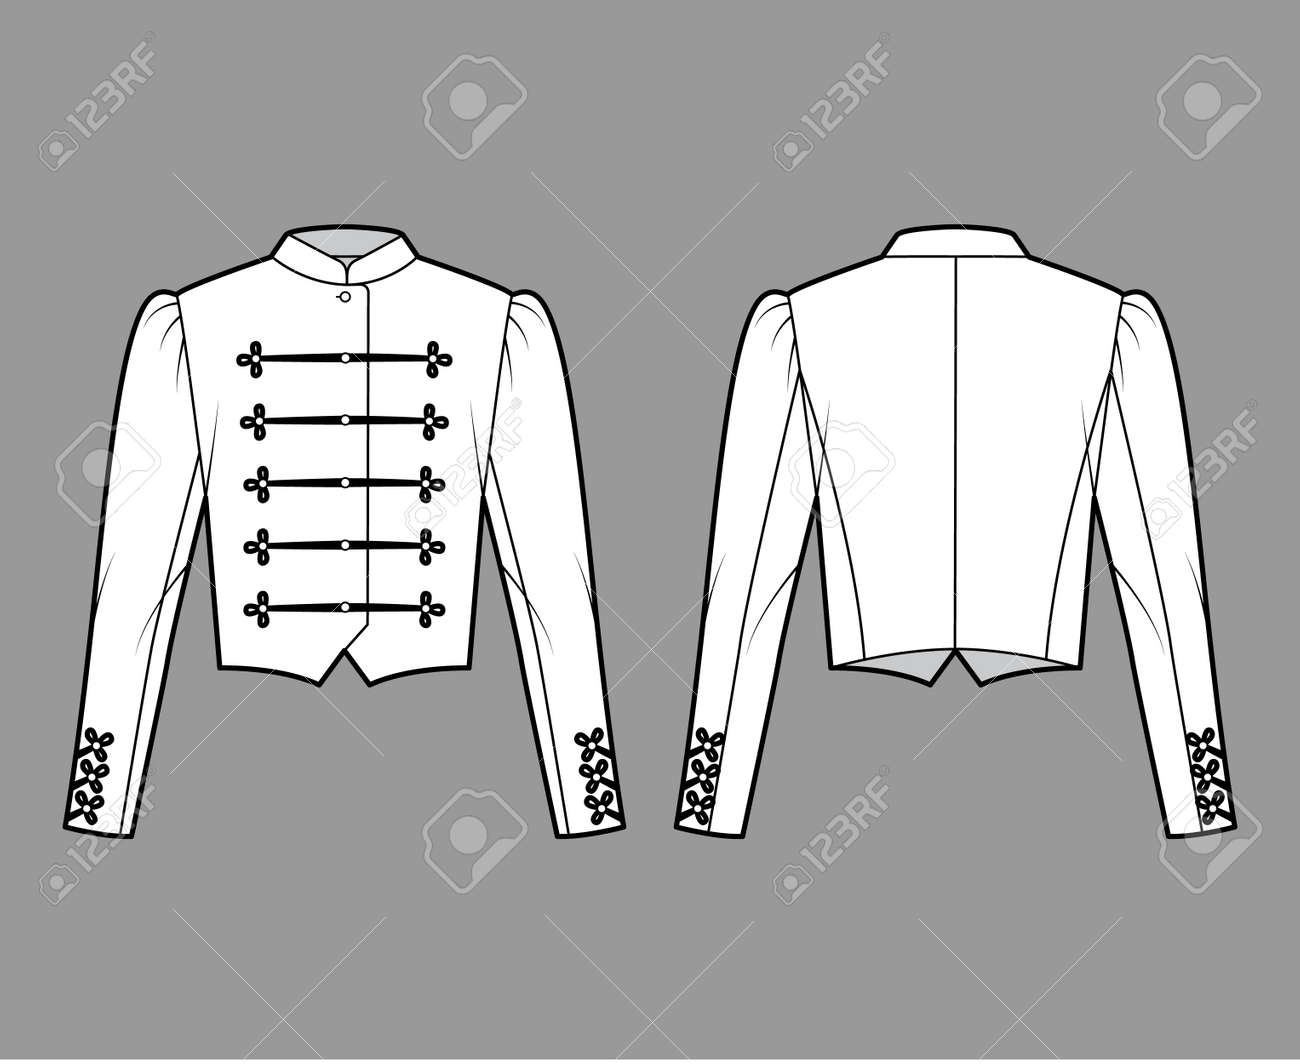 Majorette jacket technical fashion illustration with crop length, long leg o Mutton sleeves, stand collar, button frog closure. Flat blazer template front, back white color style. Women men CAD mockup - 167053558